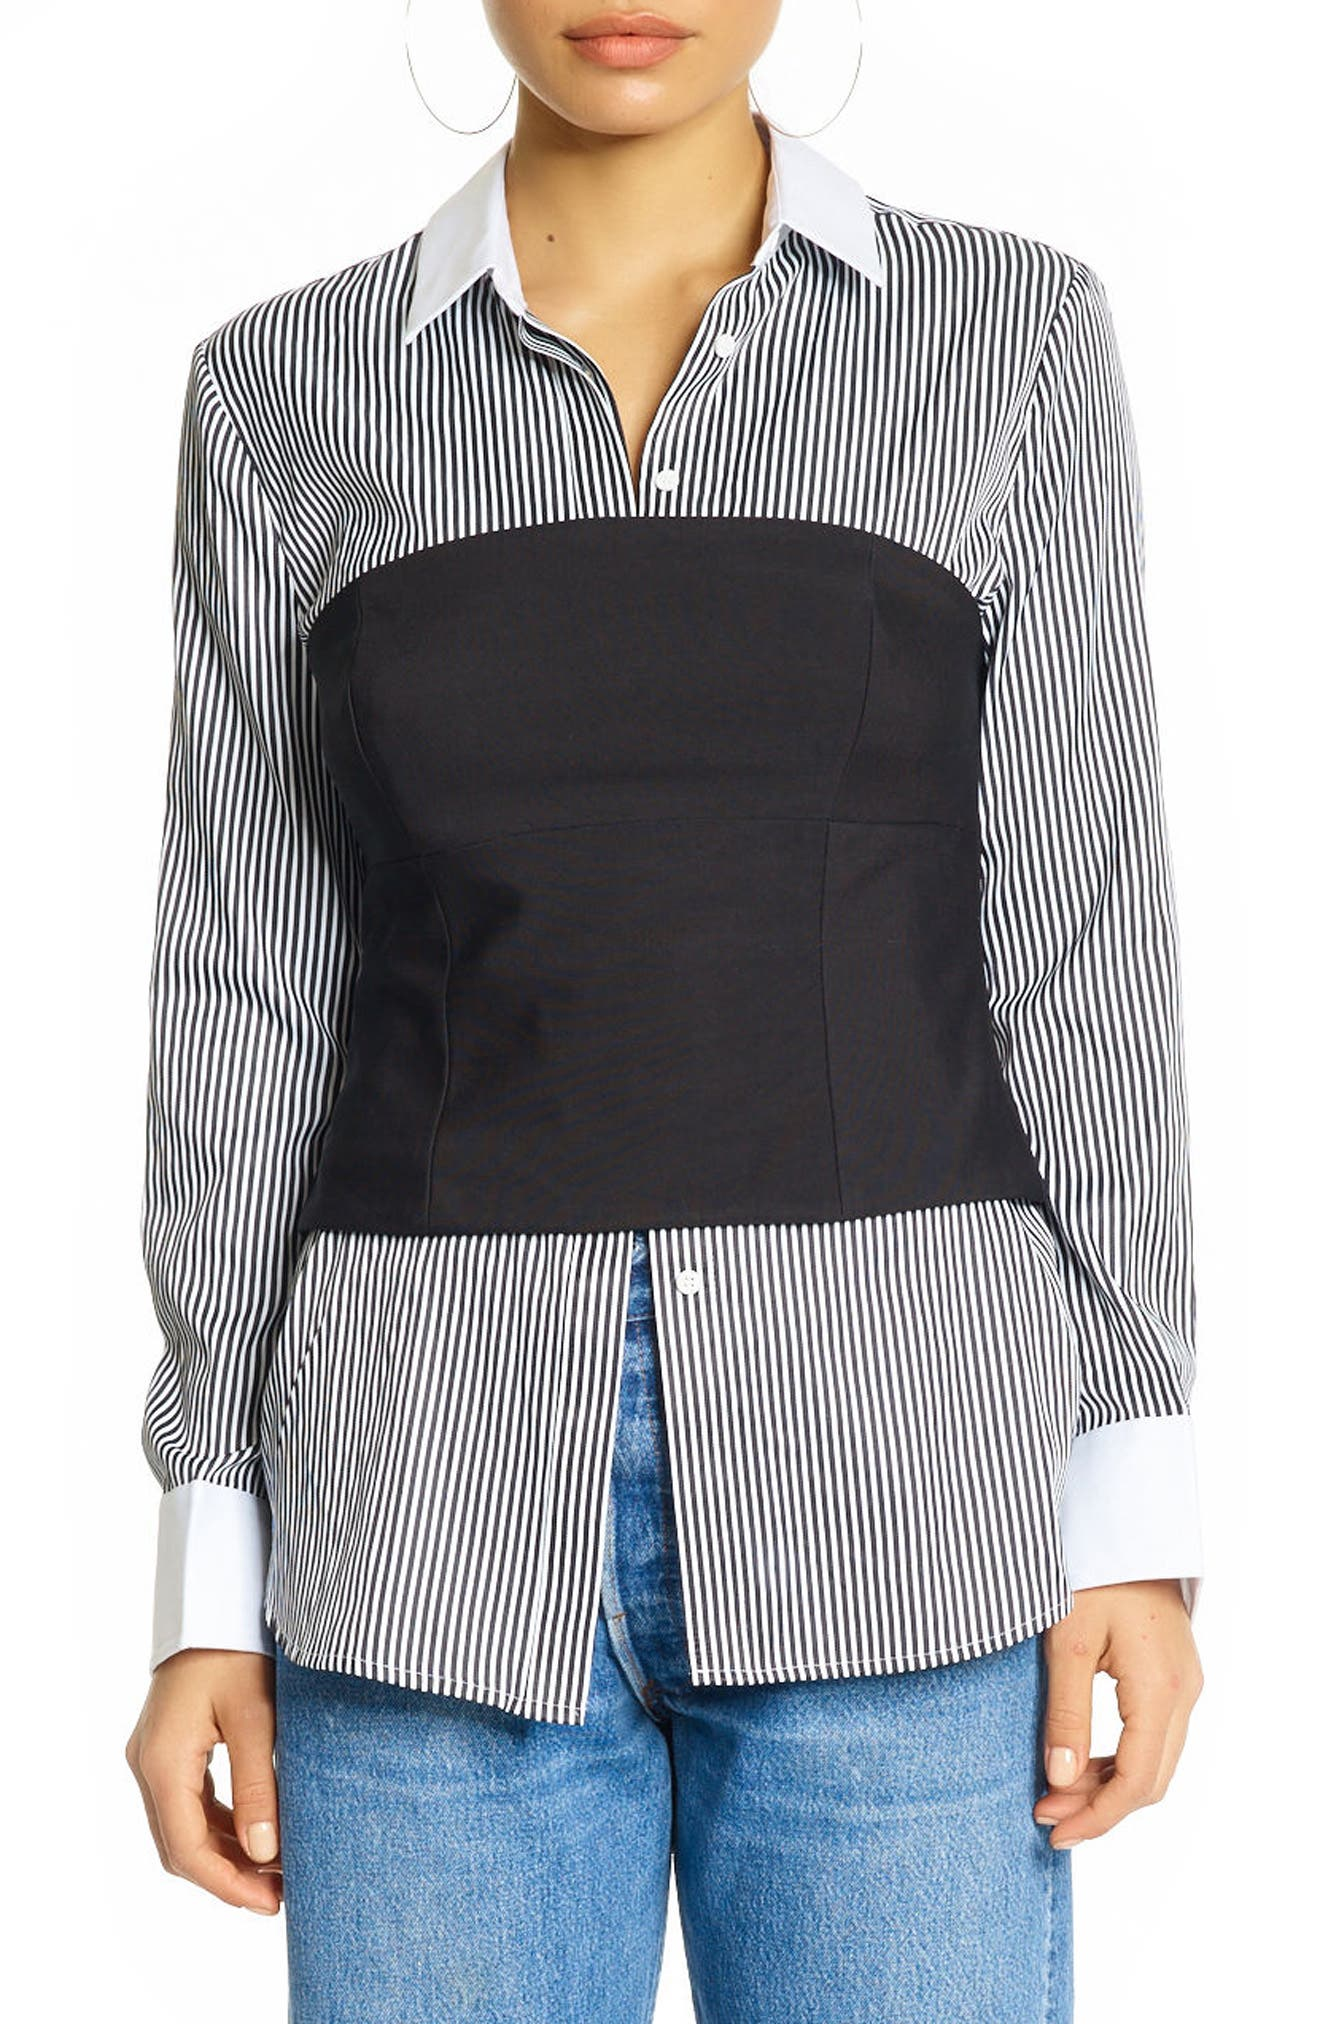 Alternate Image 1 Selected - KENDALL + KYLIE Stripe Bustier Shirt